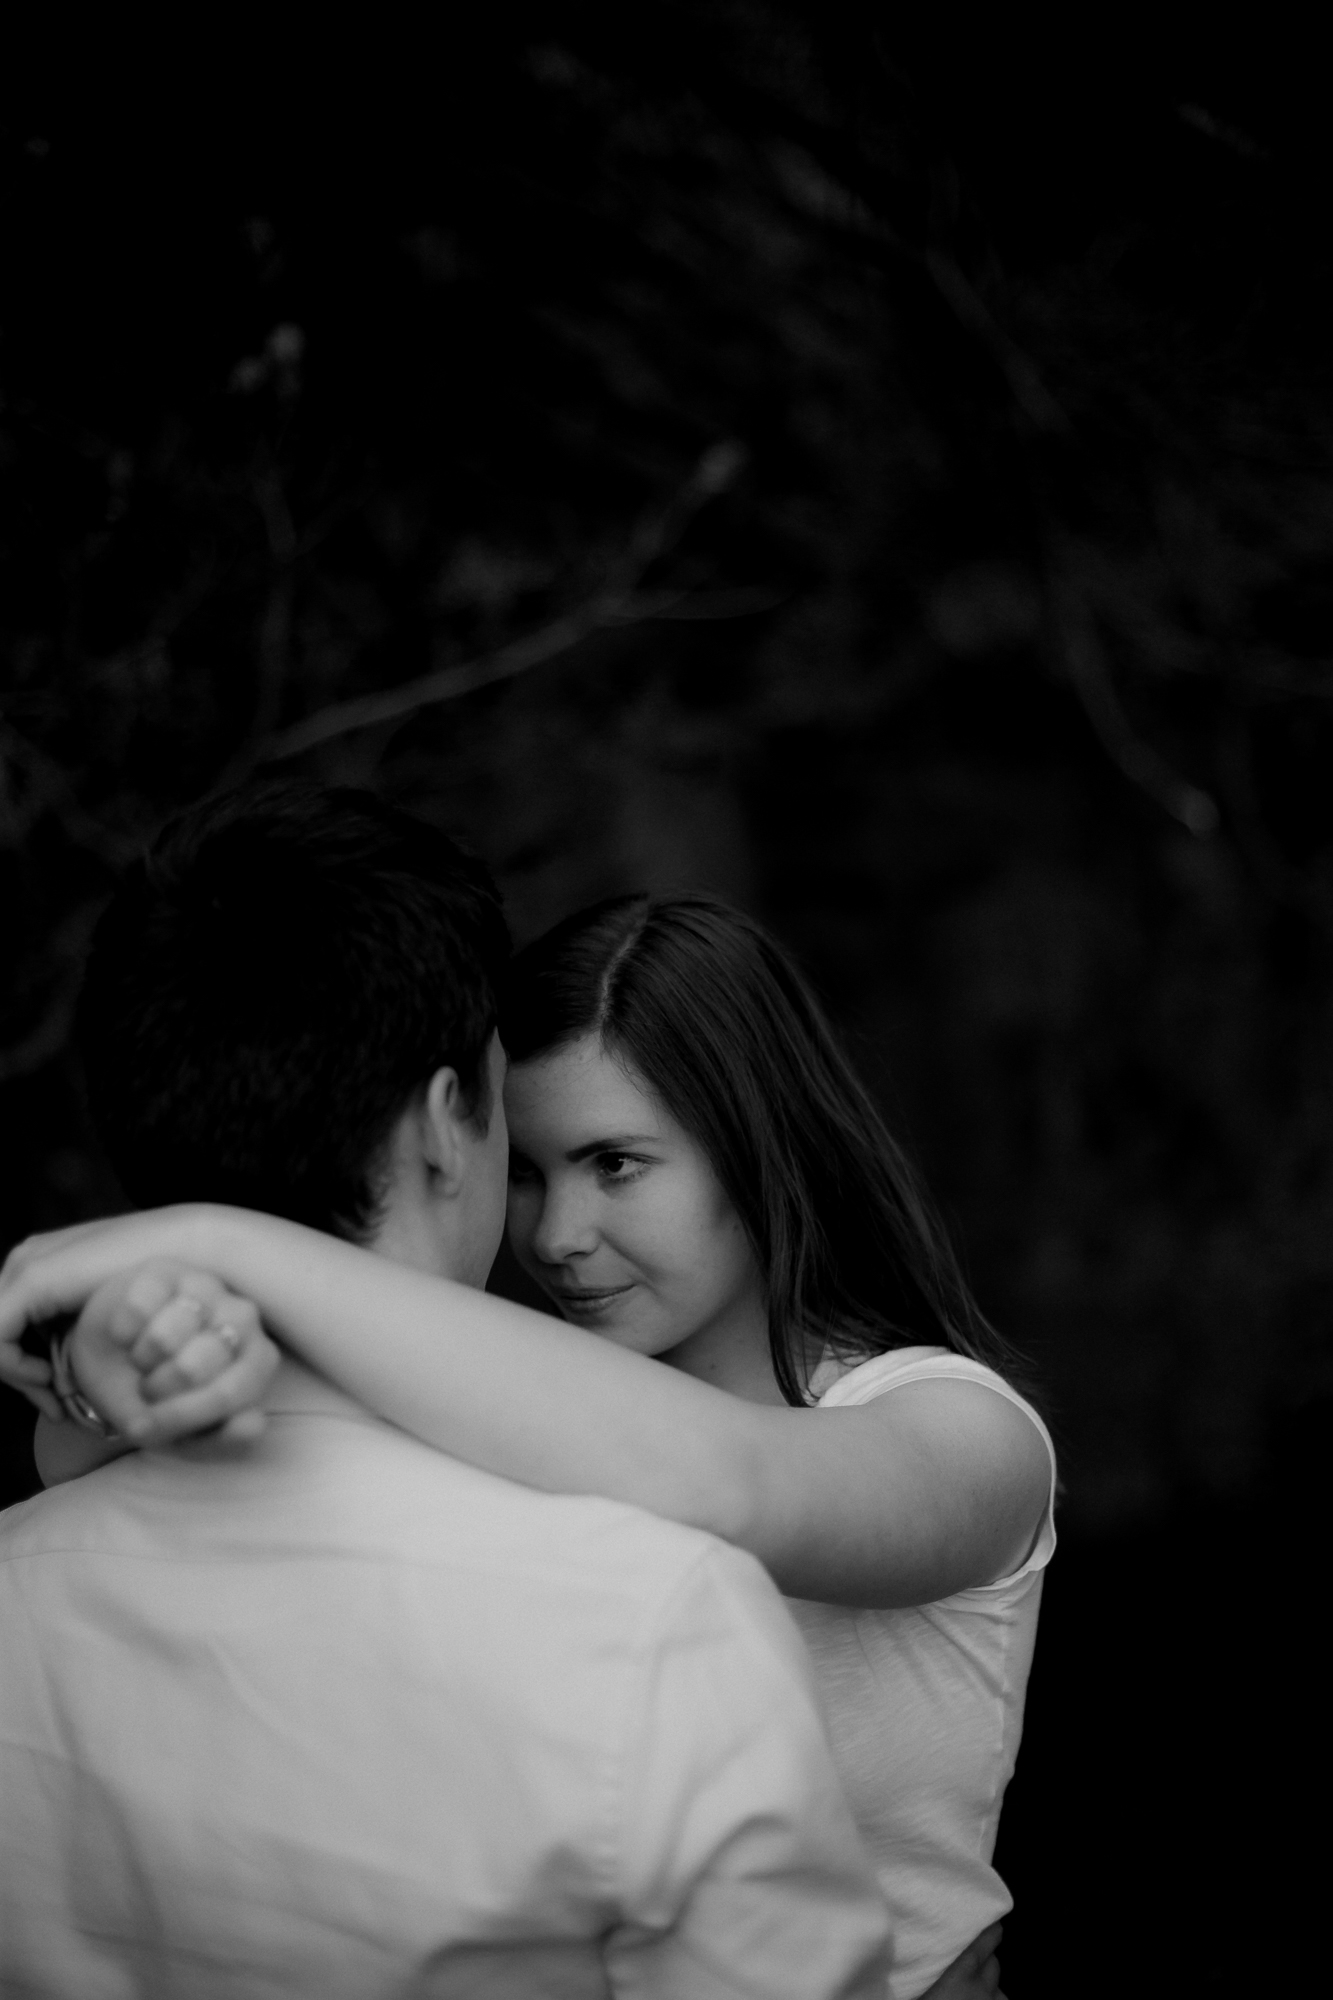 Amanzi and Steven_Engagement_Sydney_Holly Medway Photography-54.JPG